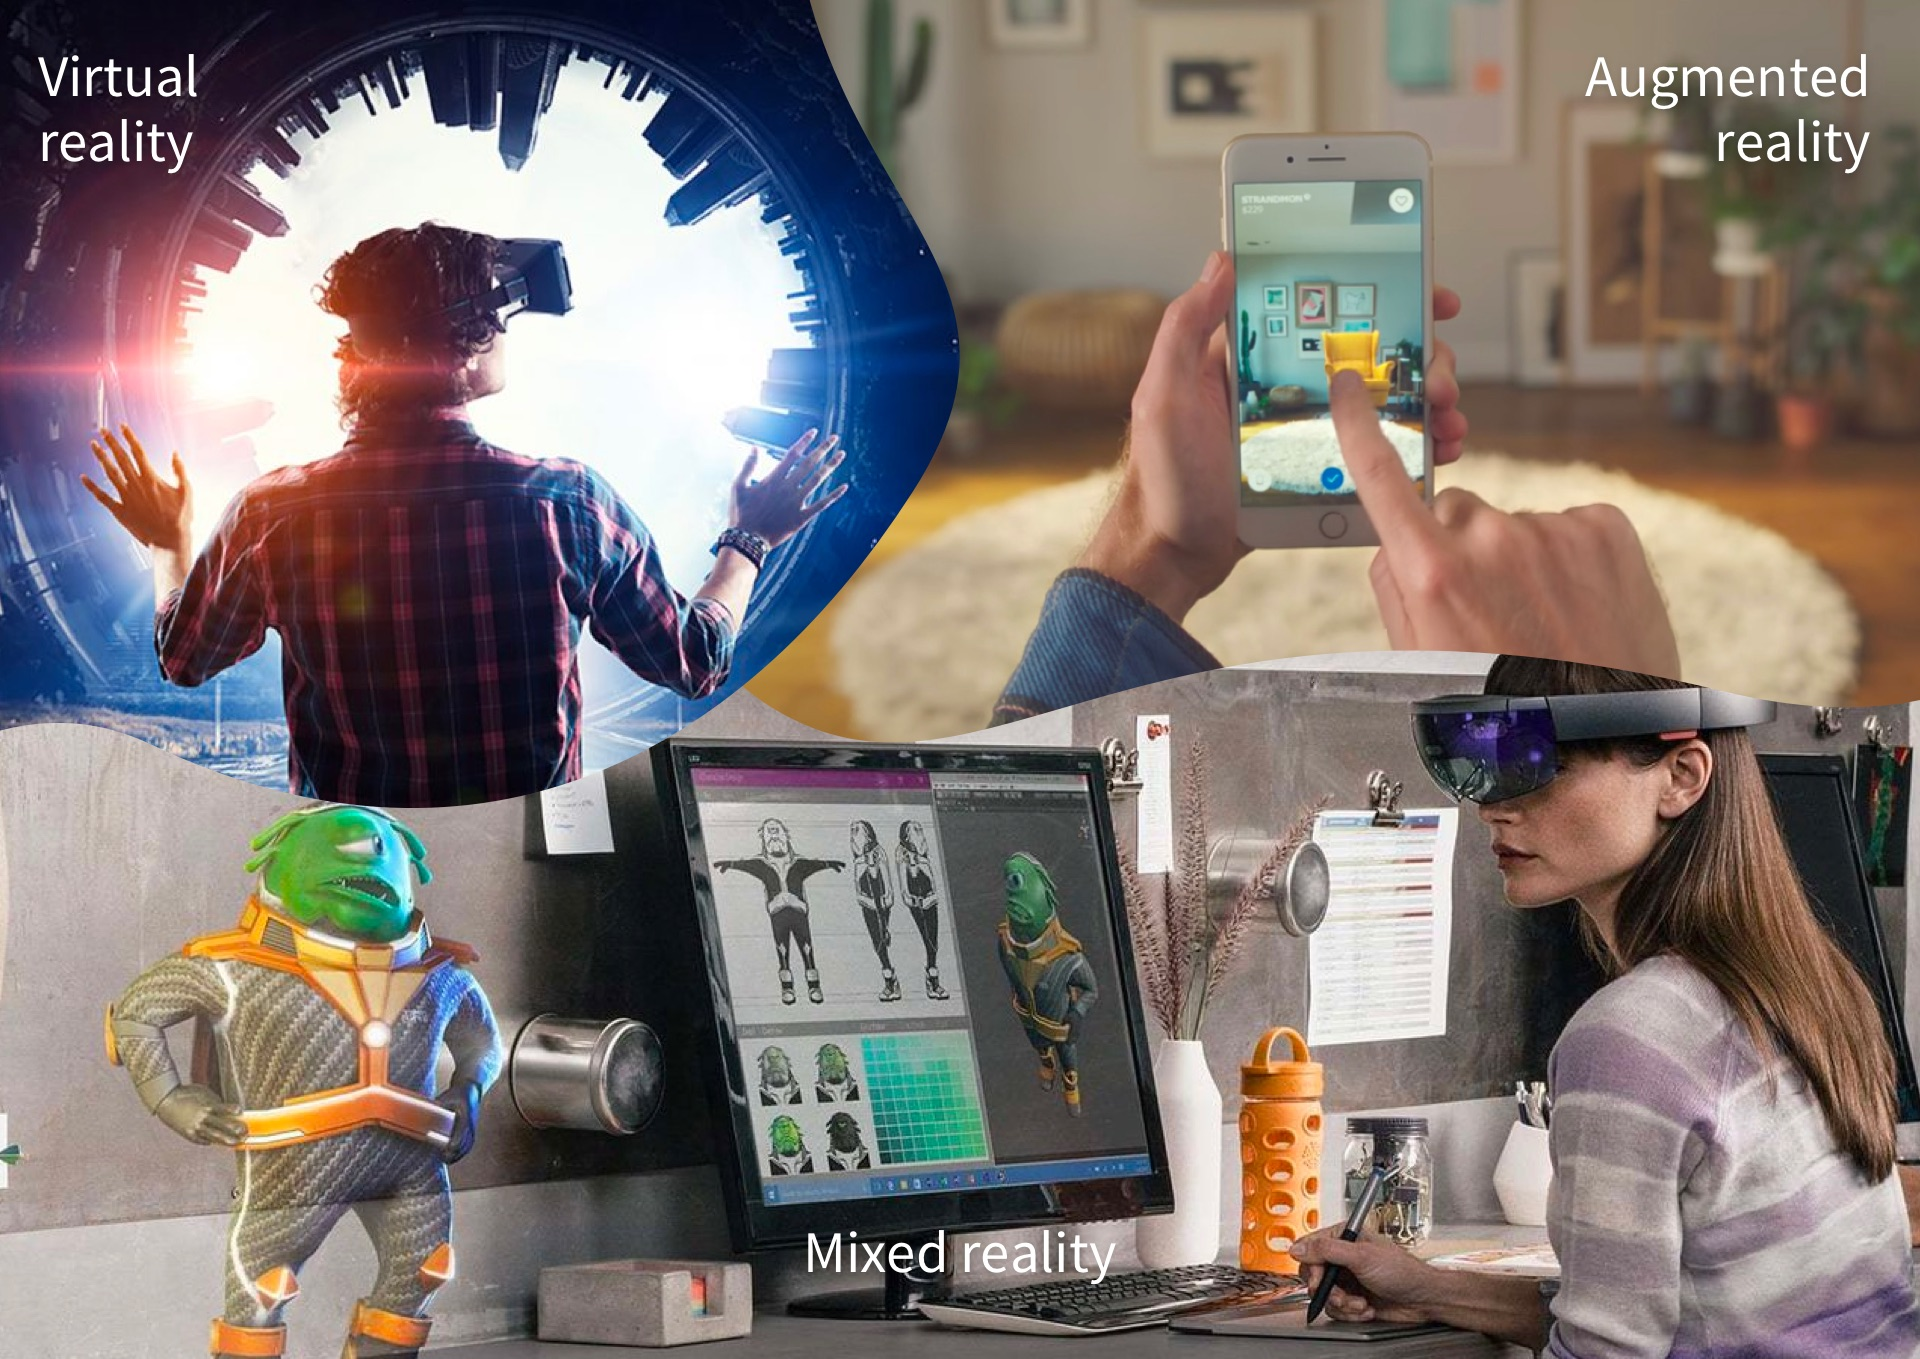 VR AR MR overview